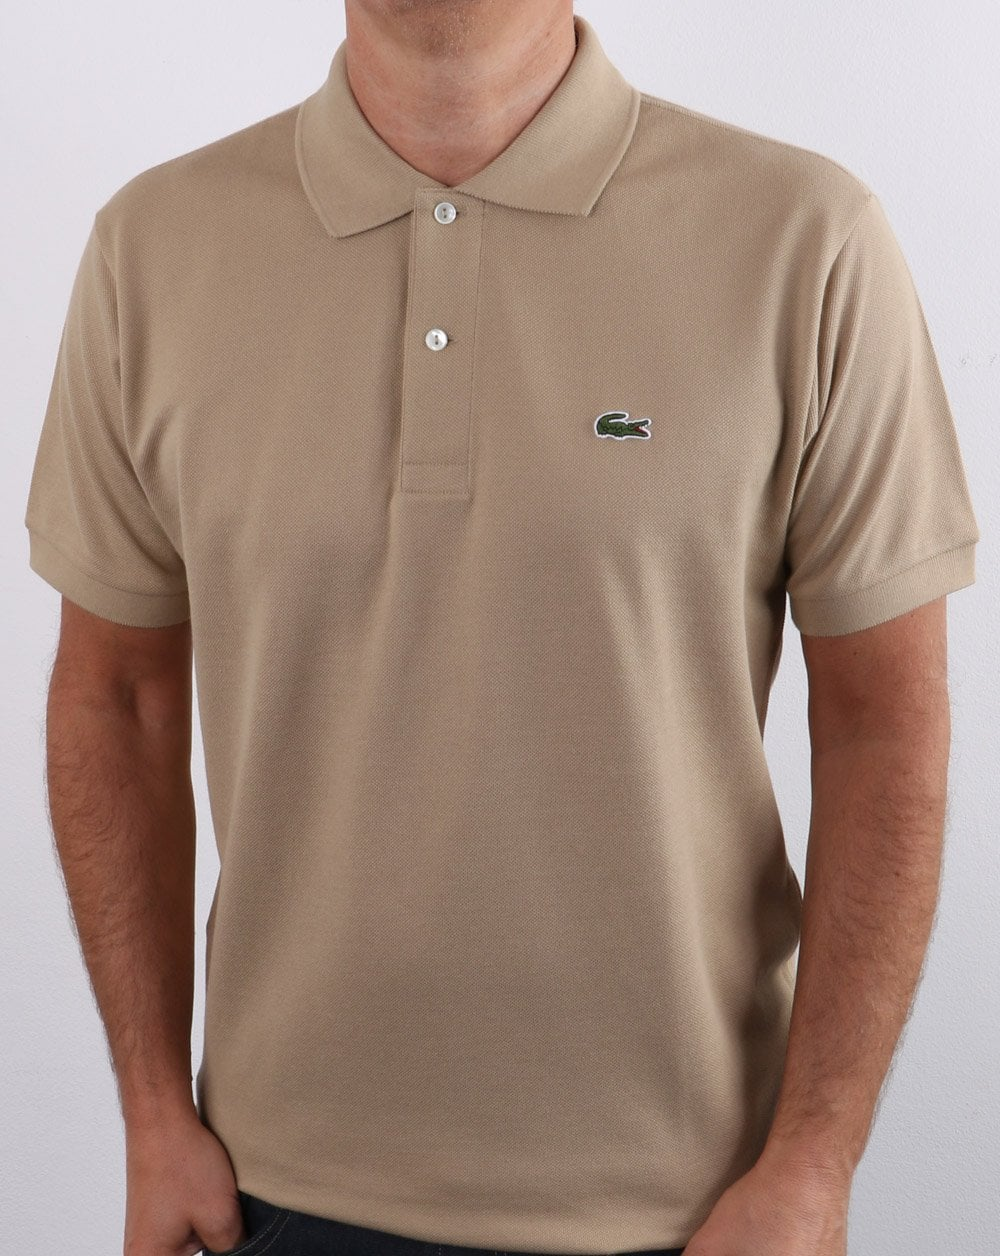 Lacoste Polo Shirt Viennese